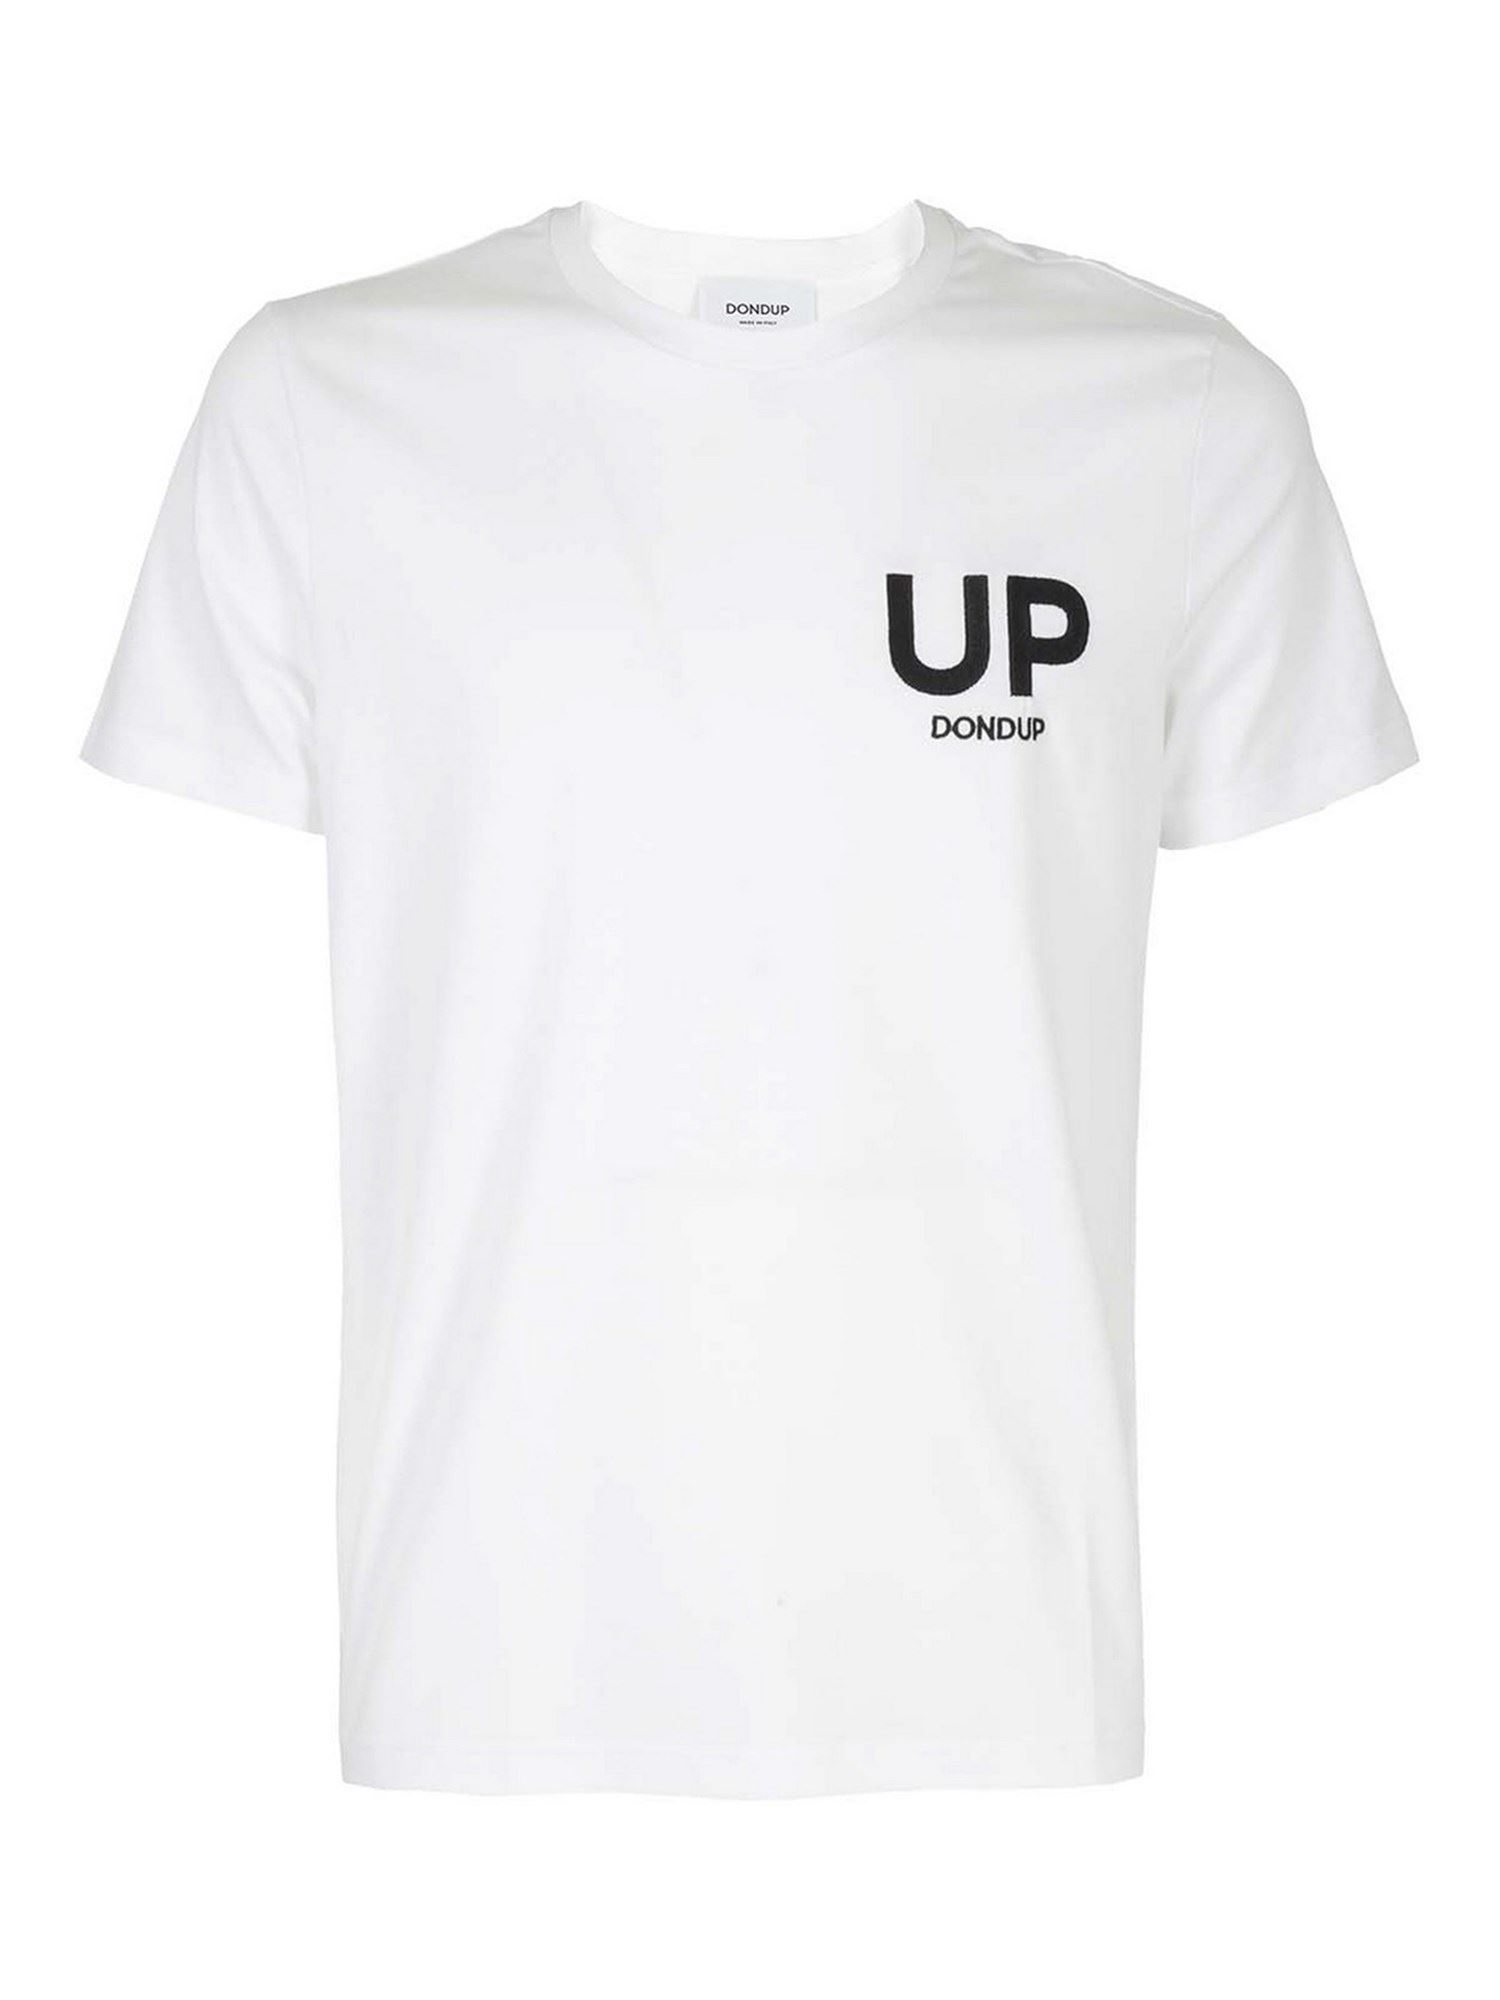 Dondup T-shirts UP T-SHIRT IN WHITE